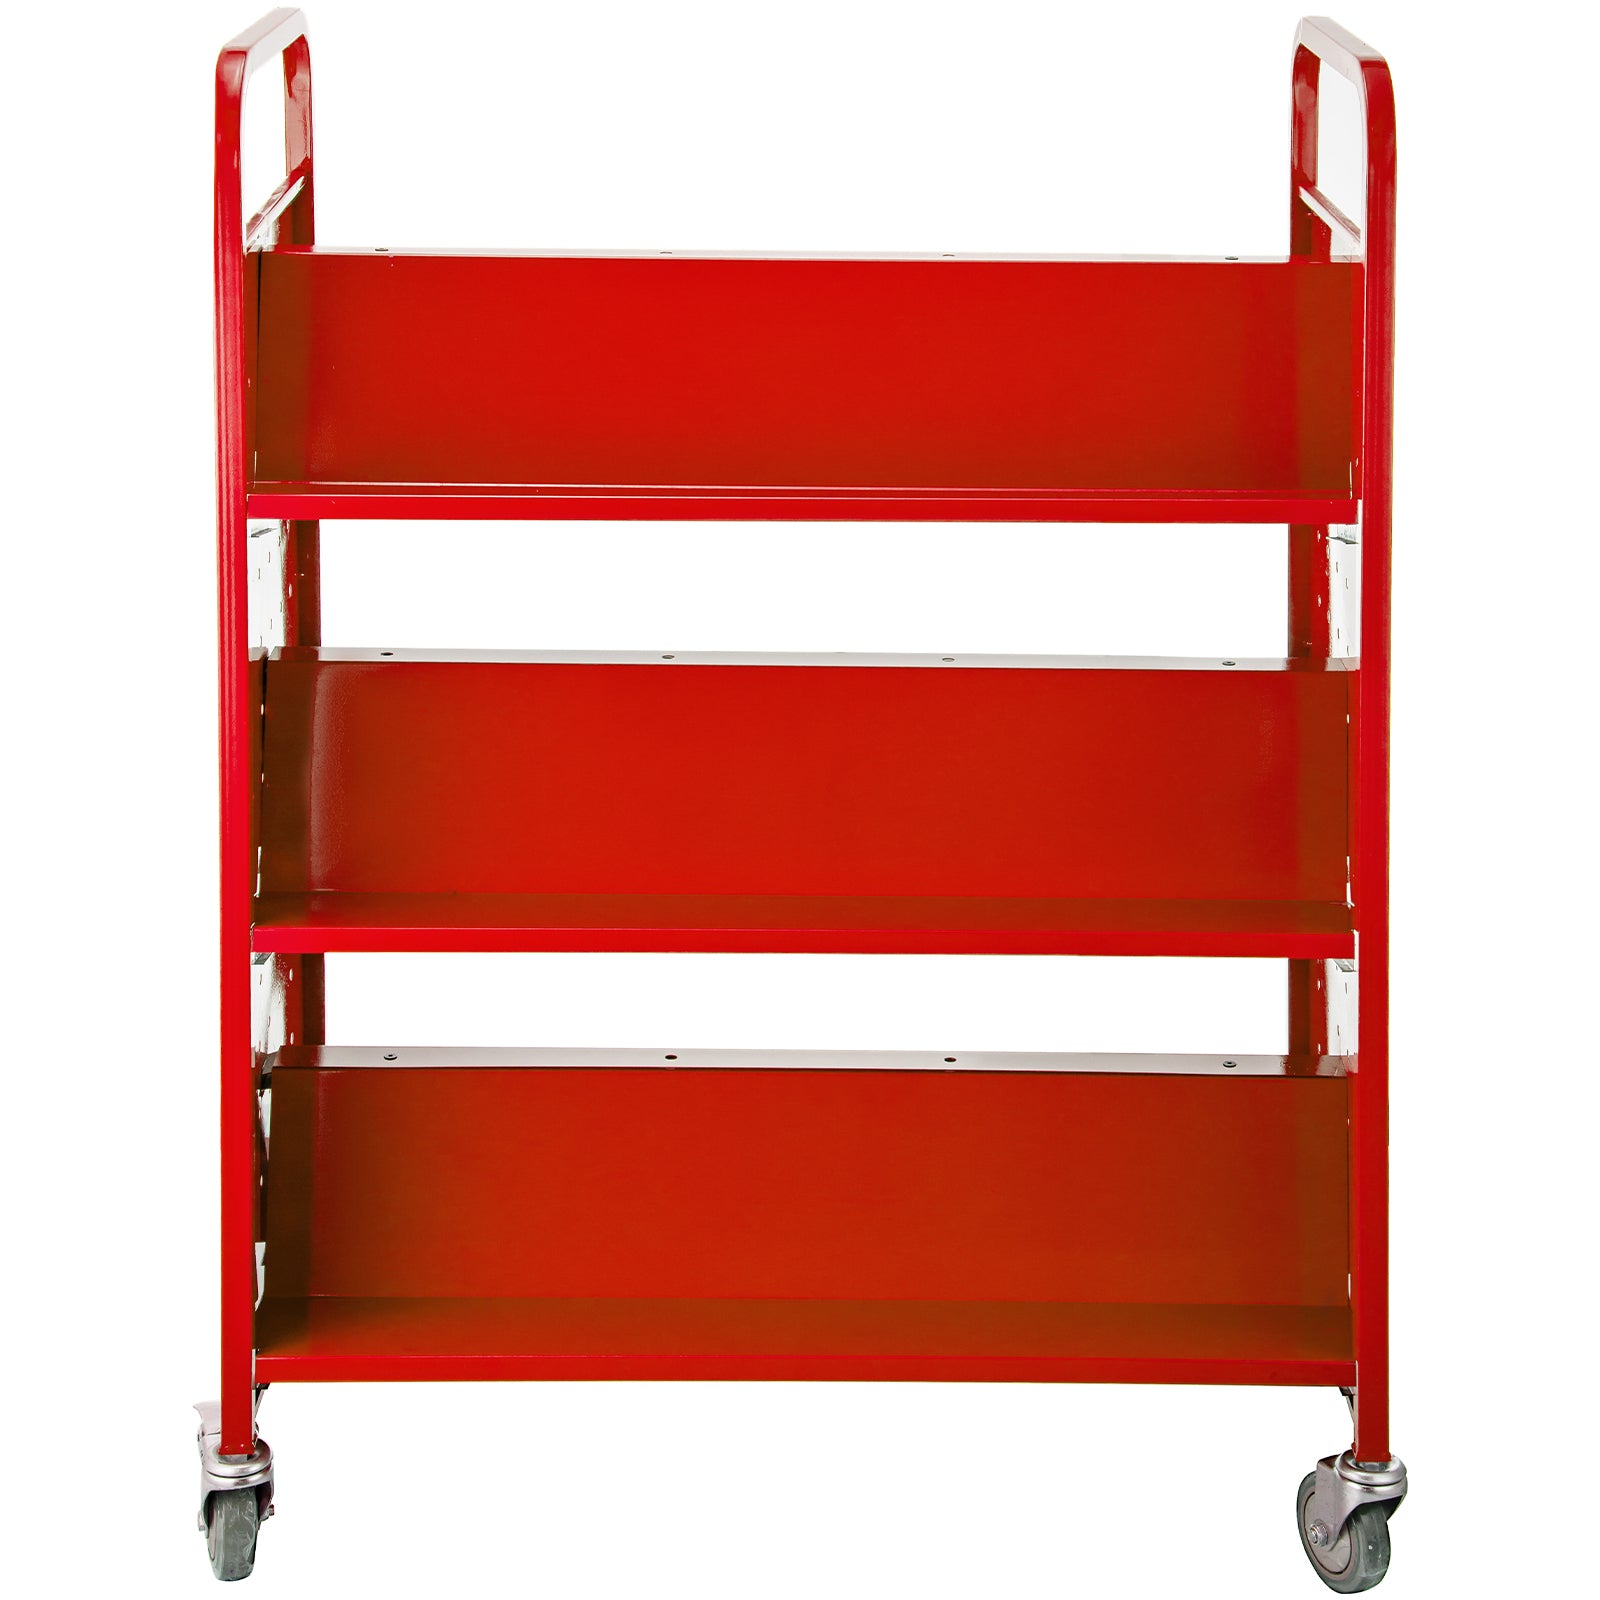 Book Cartlibrary Cart200lb With Double Sided W-shaped Sloped Shelves In Red